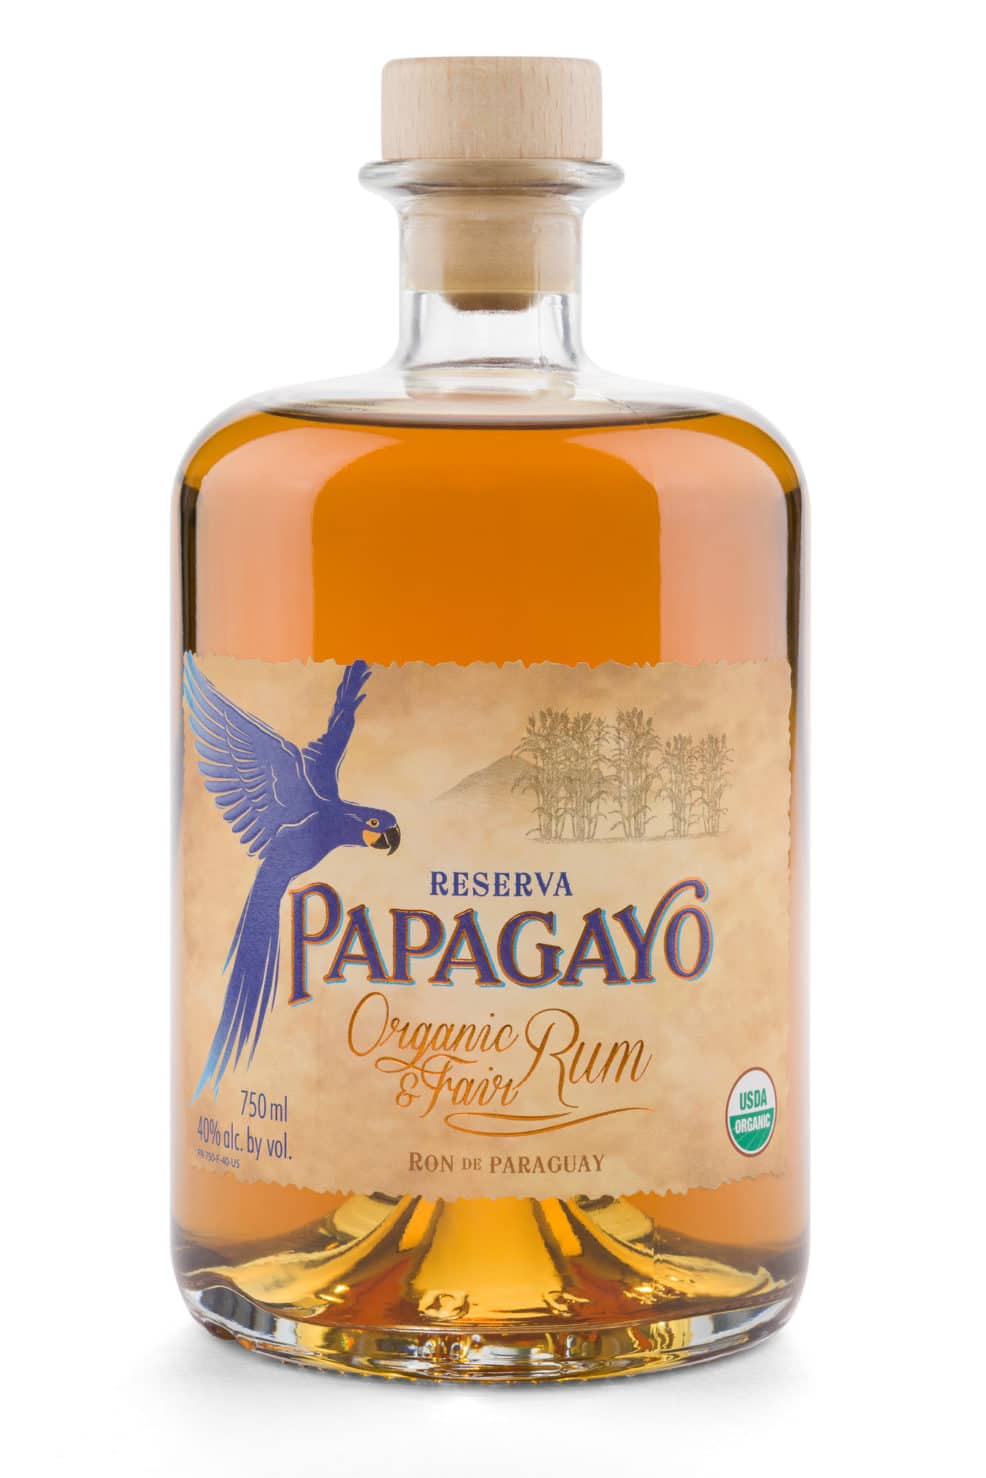 Bottle Photography of Papajayo Reserva - Organic & Fair Rum